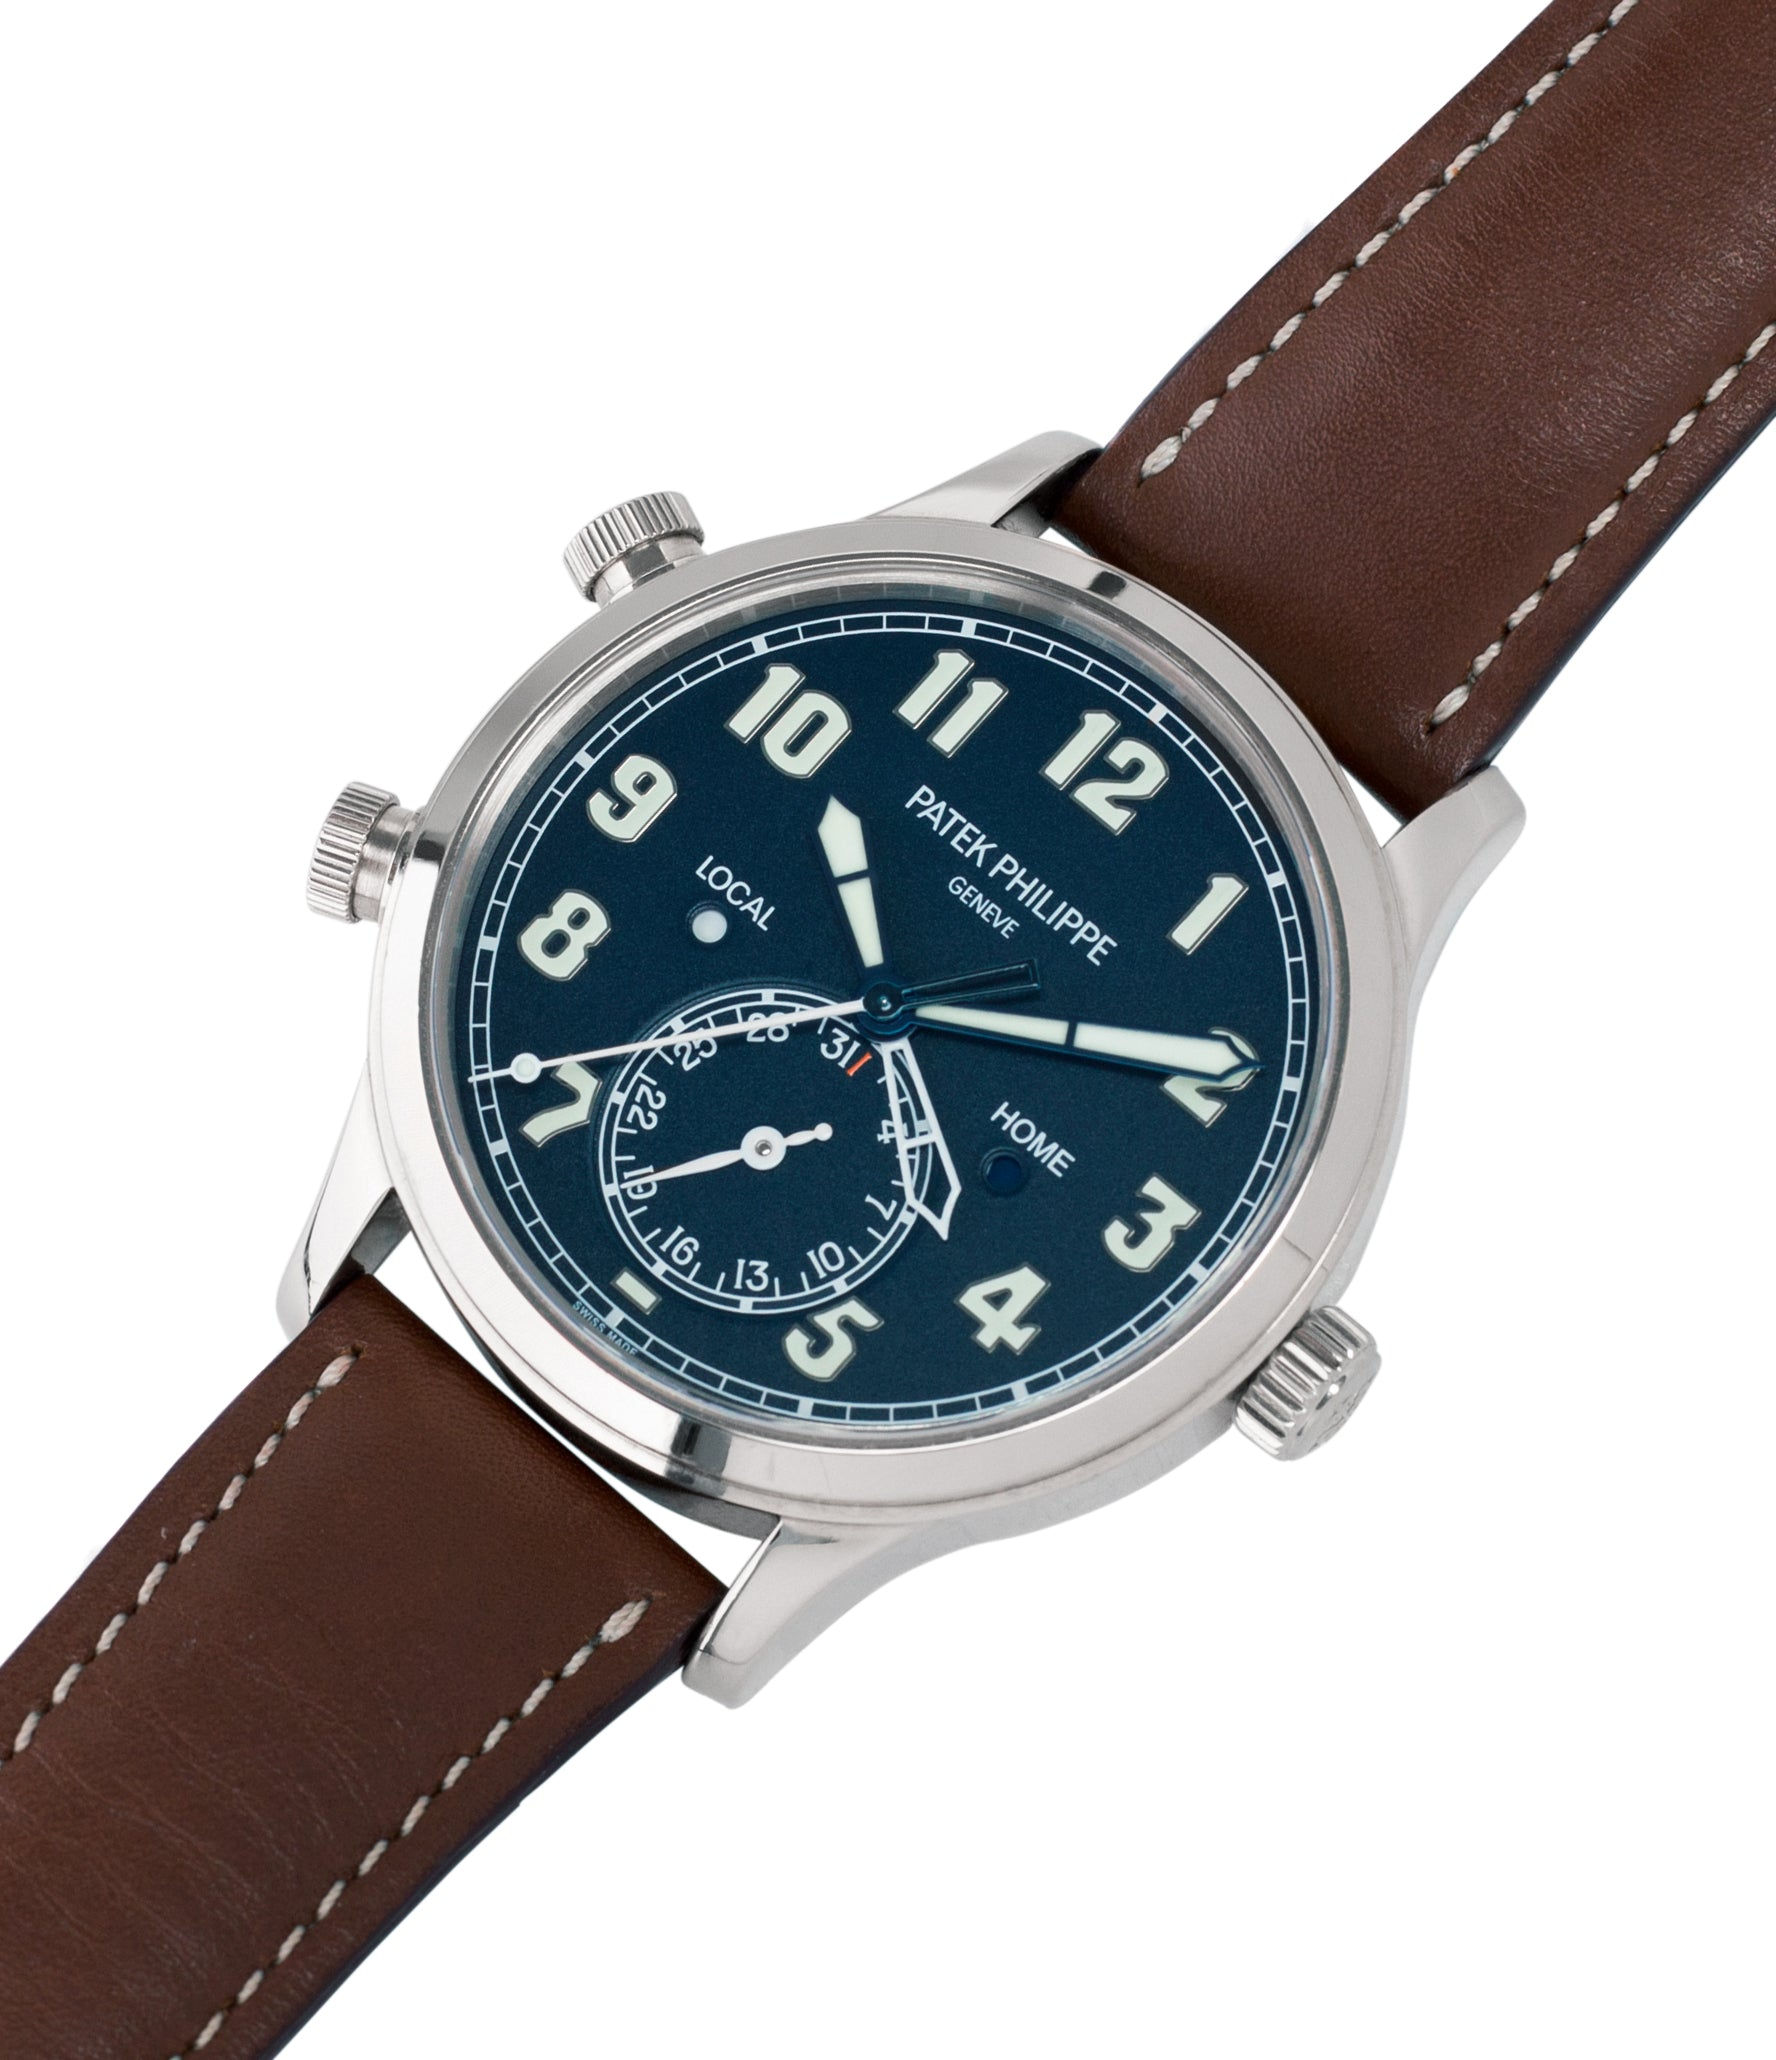 buying Patek Philippe 5524G-001 pilot travel-time white gold watch online at A Collected Man London specialist retailer of rare watches